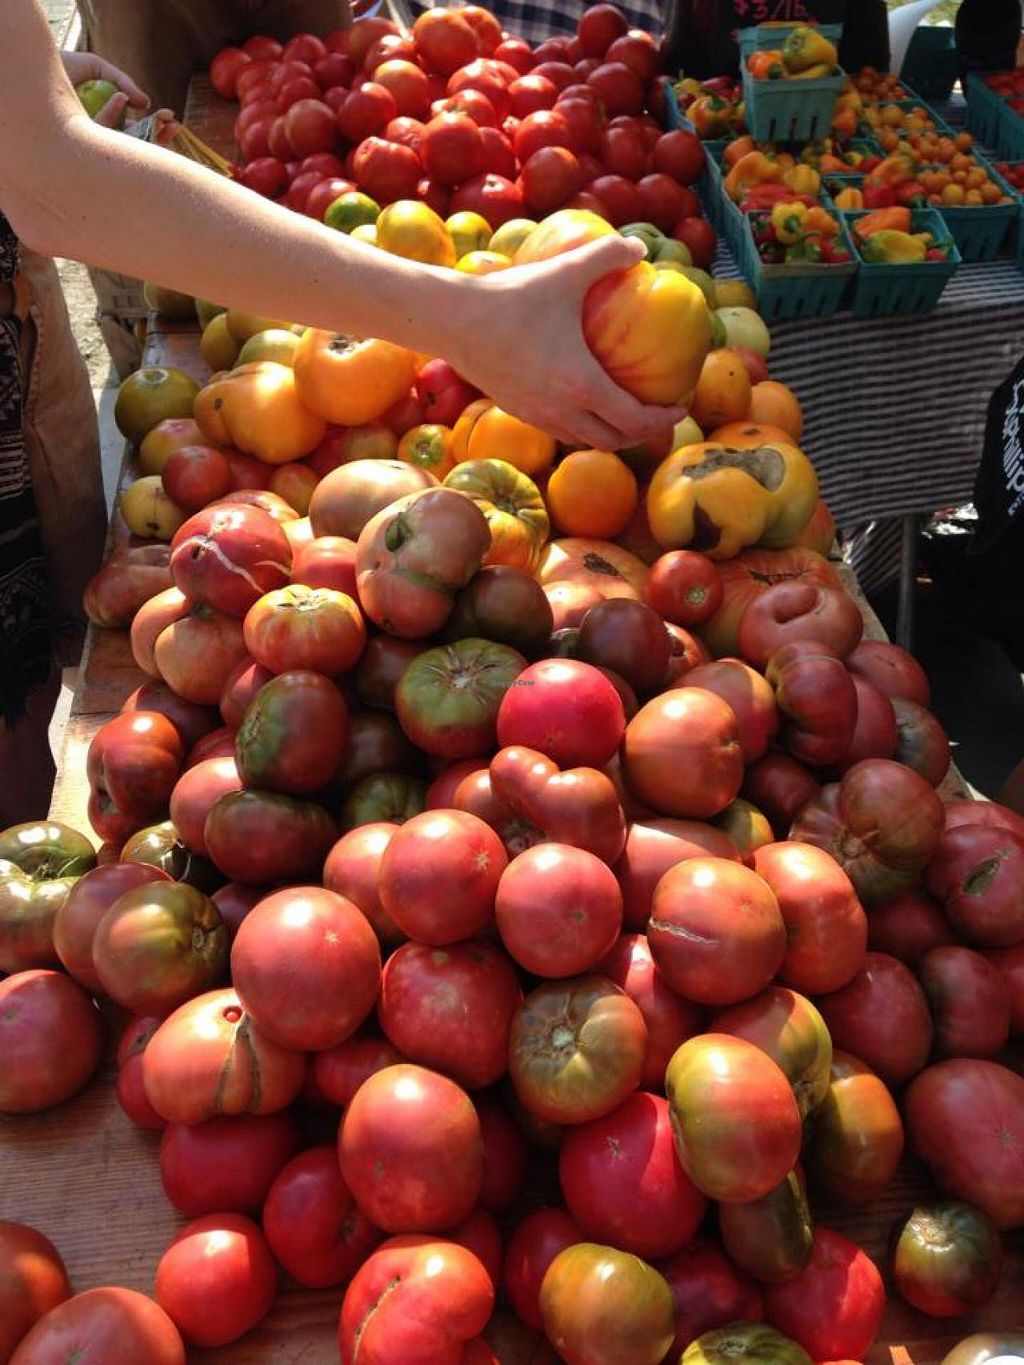 """Photo of Durham Farmers' Market  by <a href=""""/members/profile/community"""">community</a> <br/>Durham Farmers' Market <br/> July 31, 2014  - <a href='/contact/abuse/image/49415/75706'>Report</a>"""